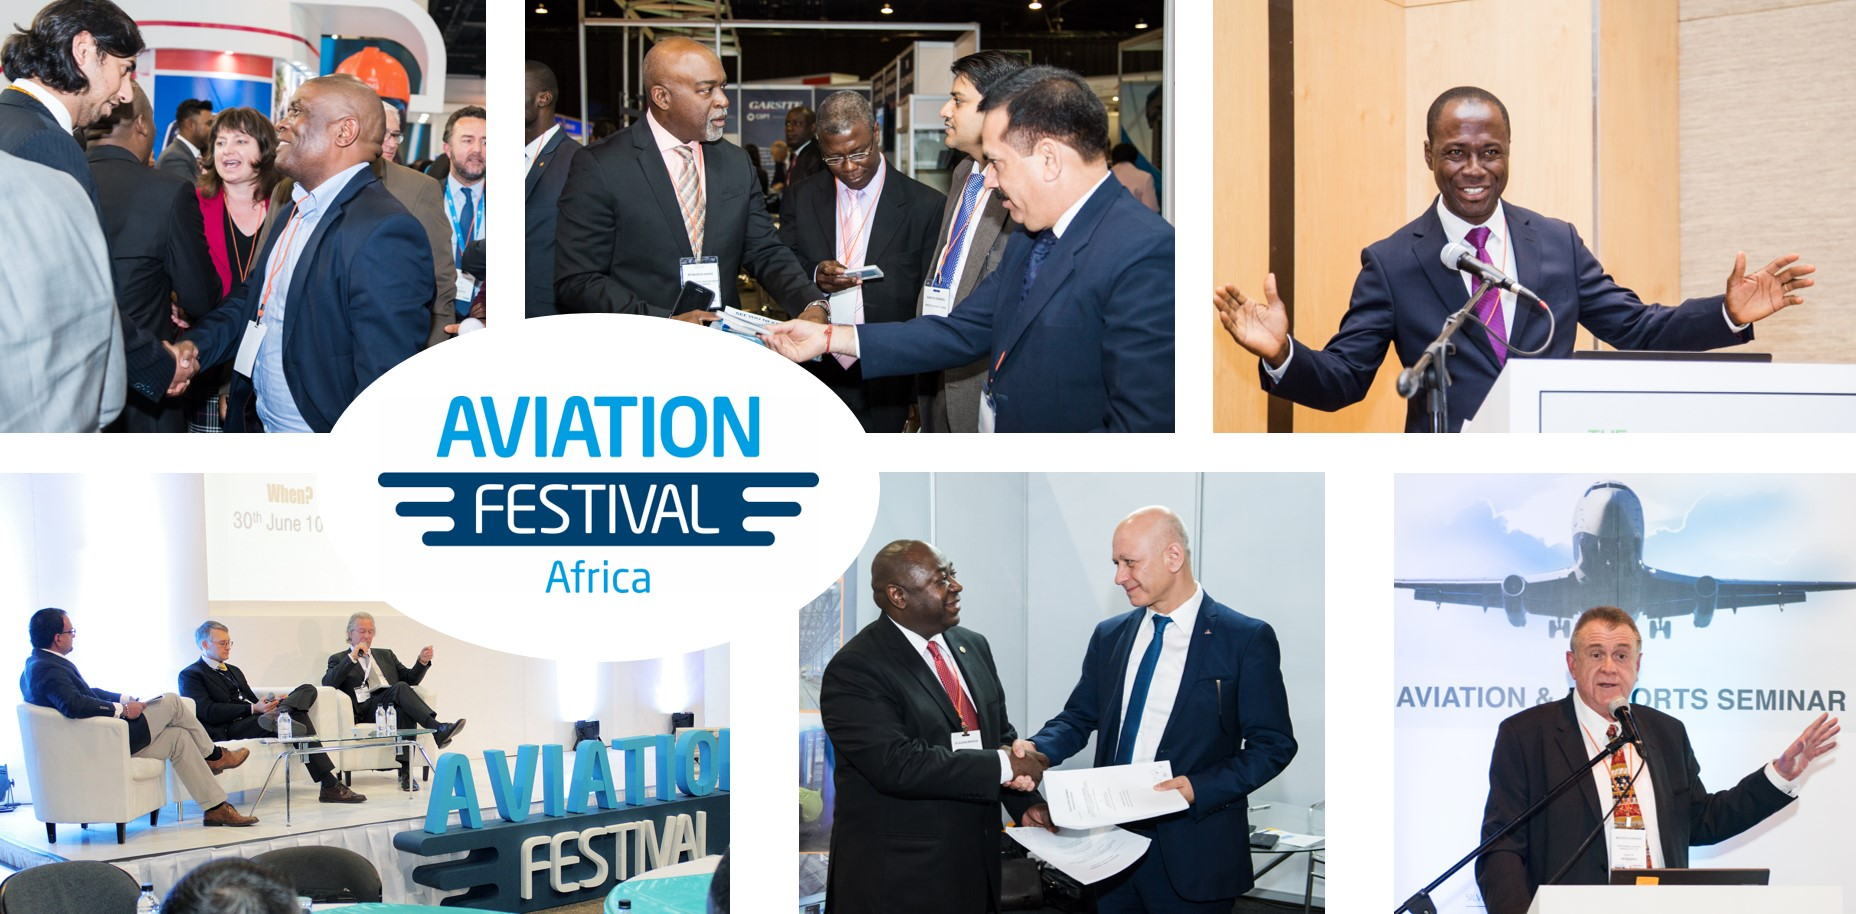 Aviation Festival Africa collage of Images